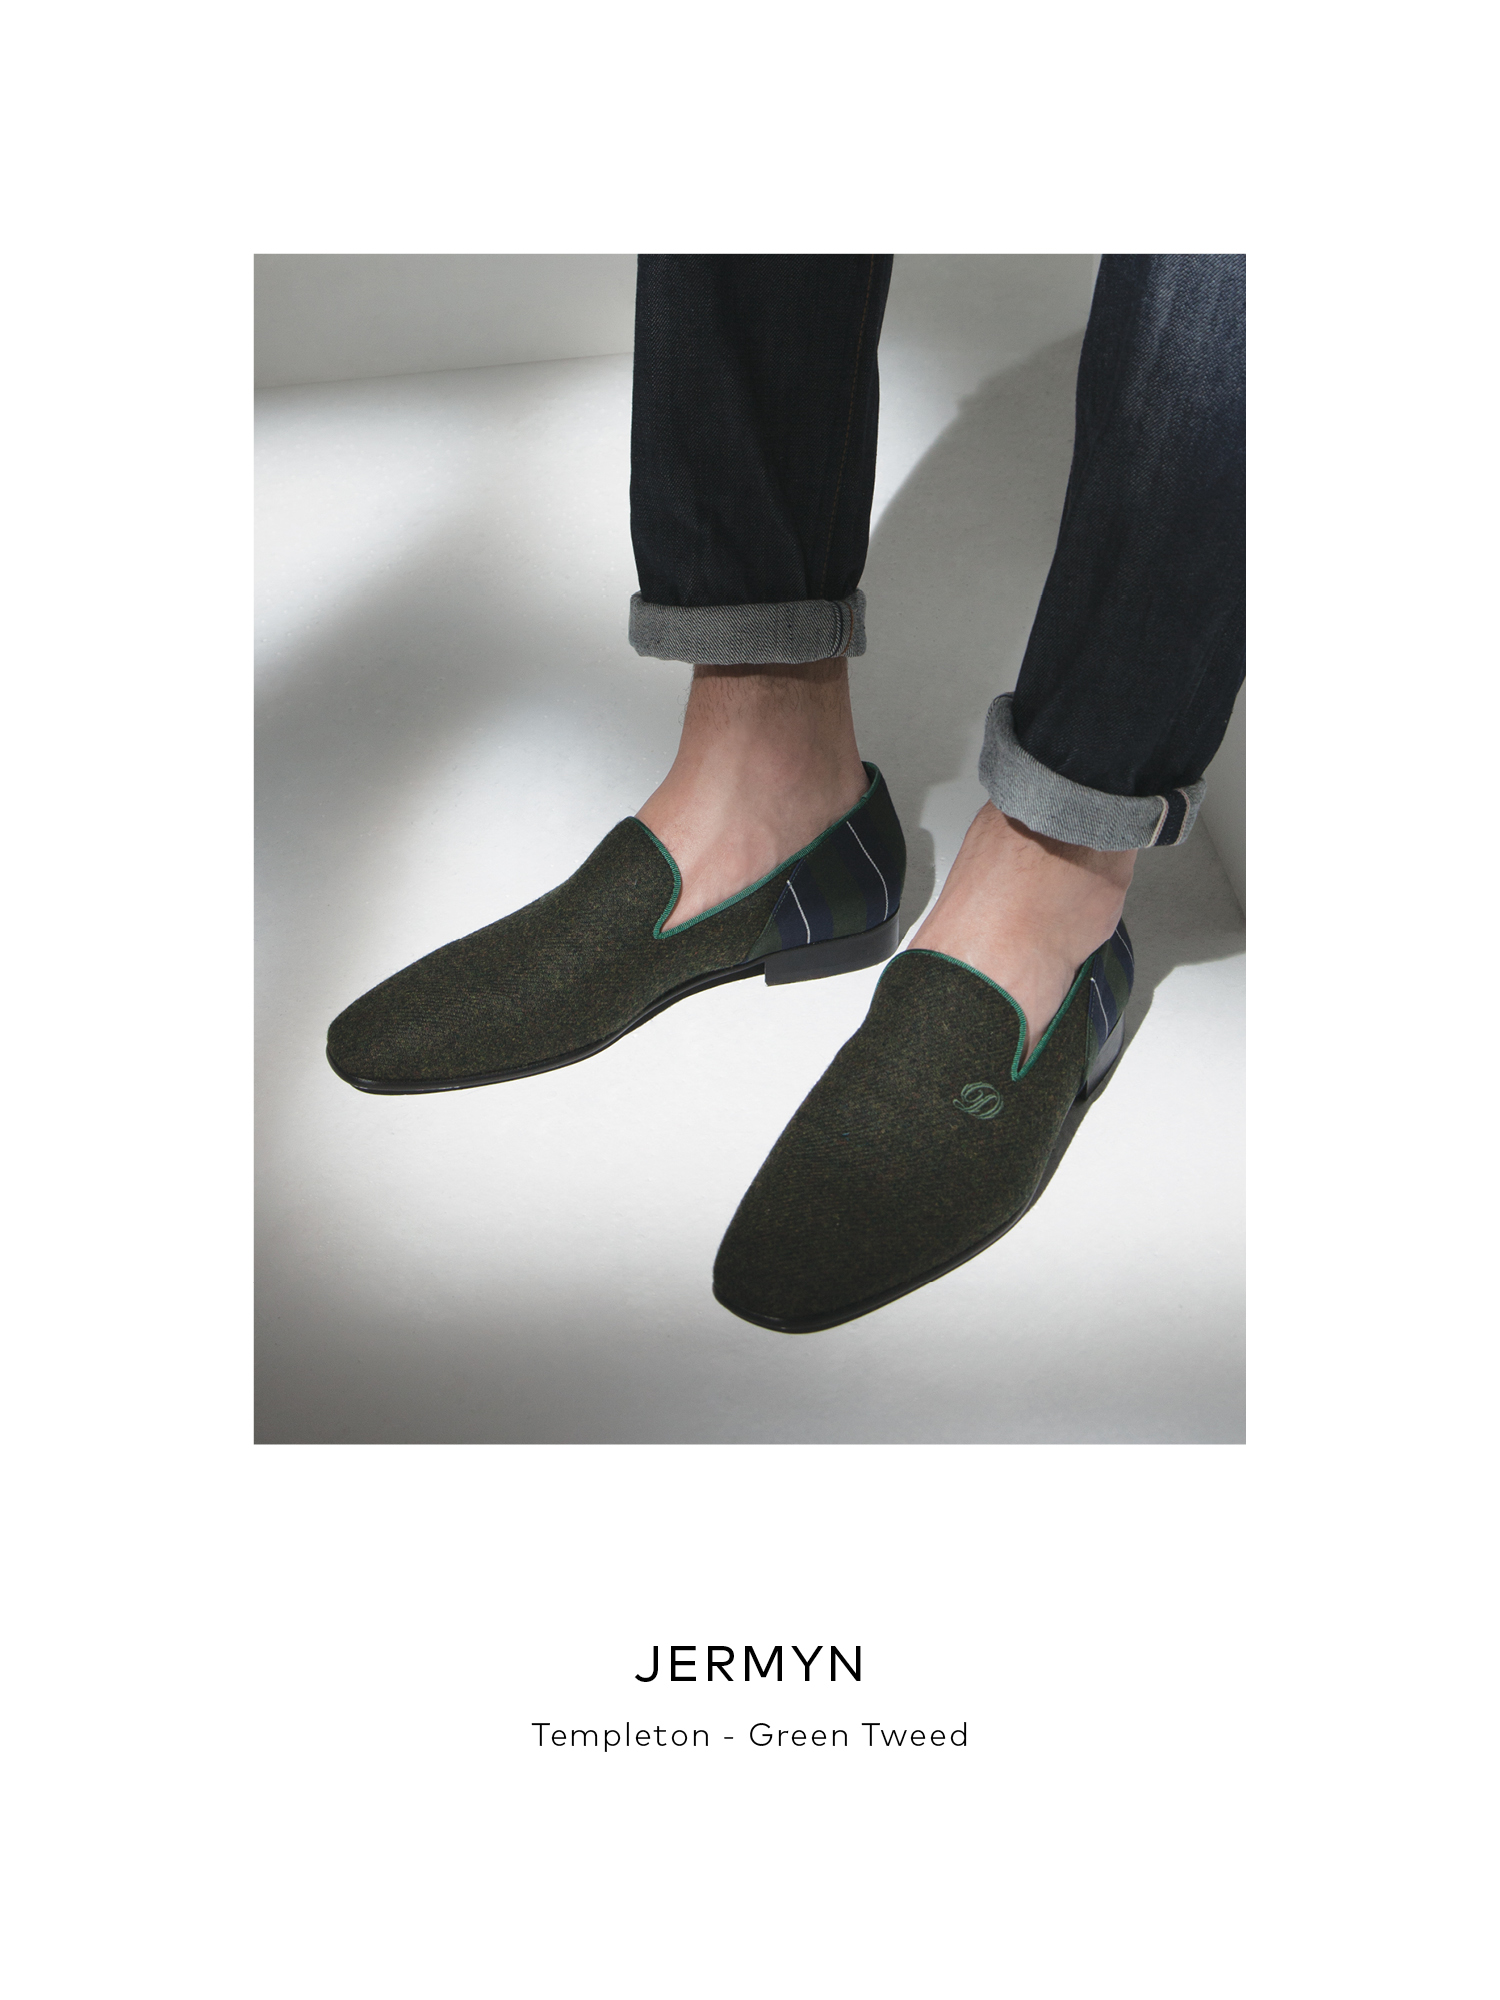 Jermyn, Templeton - Green Tweed